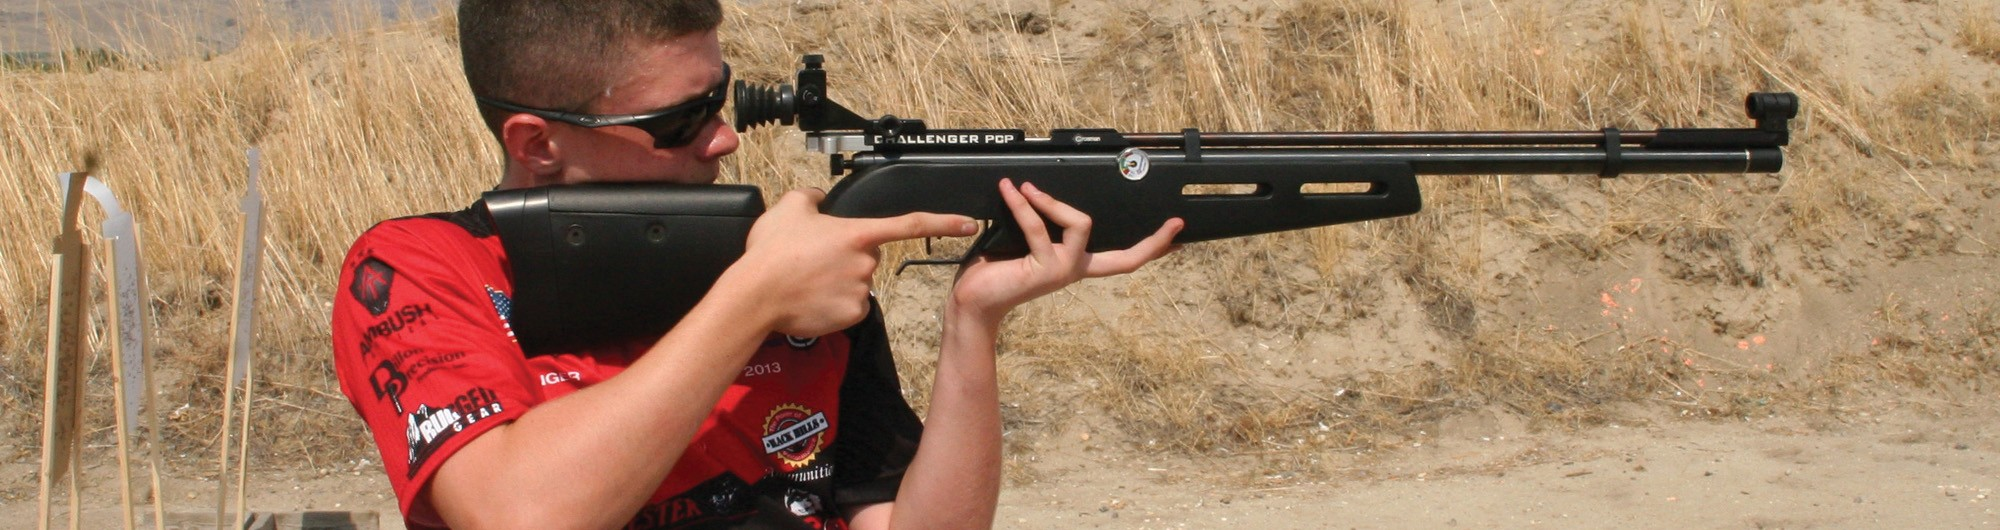 Best air rifles in 2019 - The most exciting guns for you to have